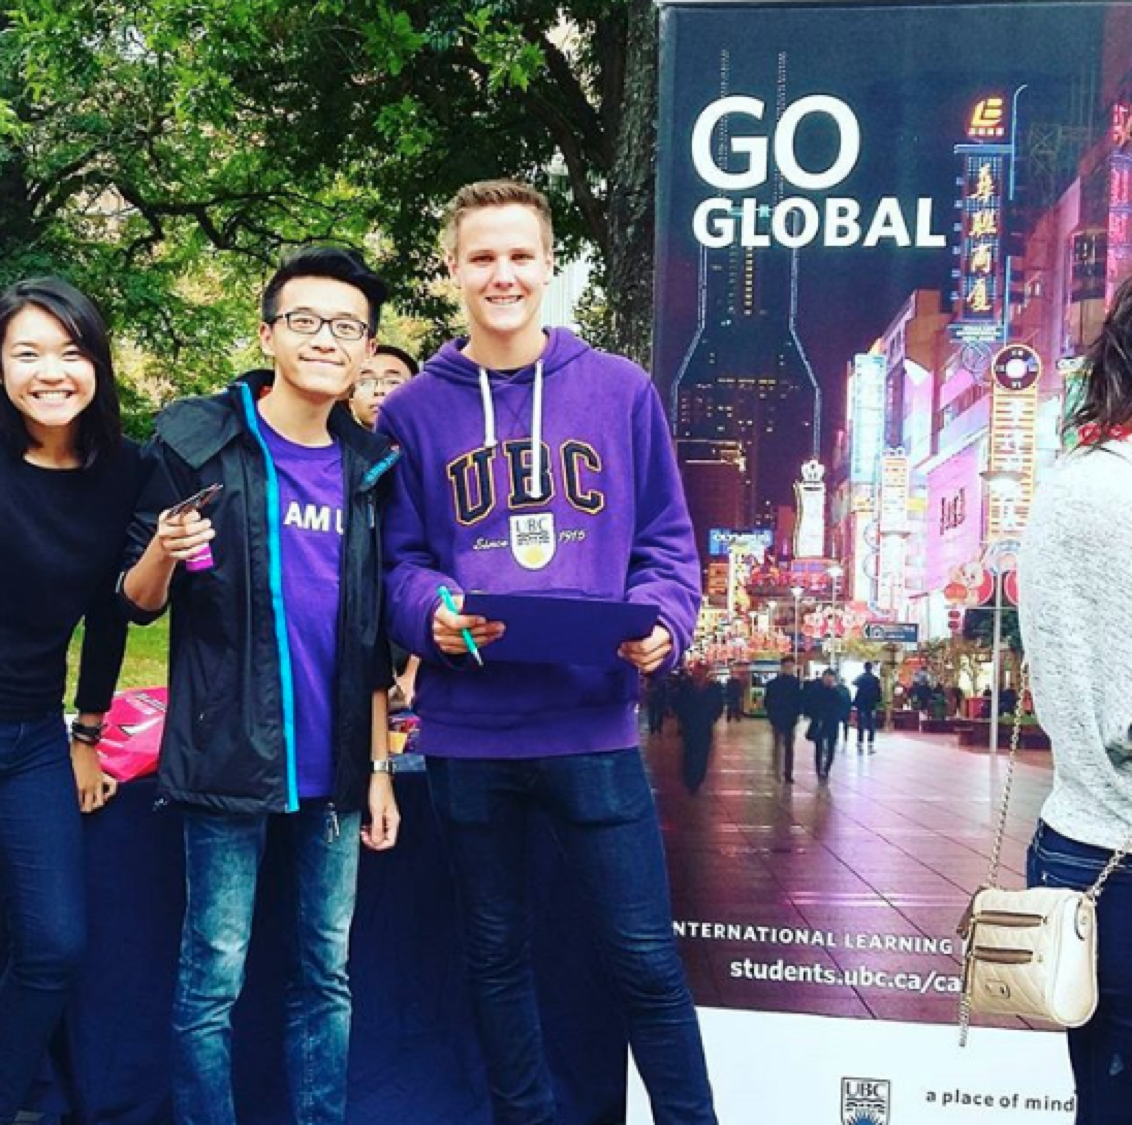 Interested in going for an exchange? Come visit us at the Go Global booth today! #goglobal #ubc #iamubc #imagineday